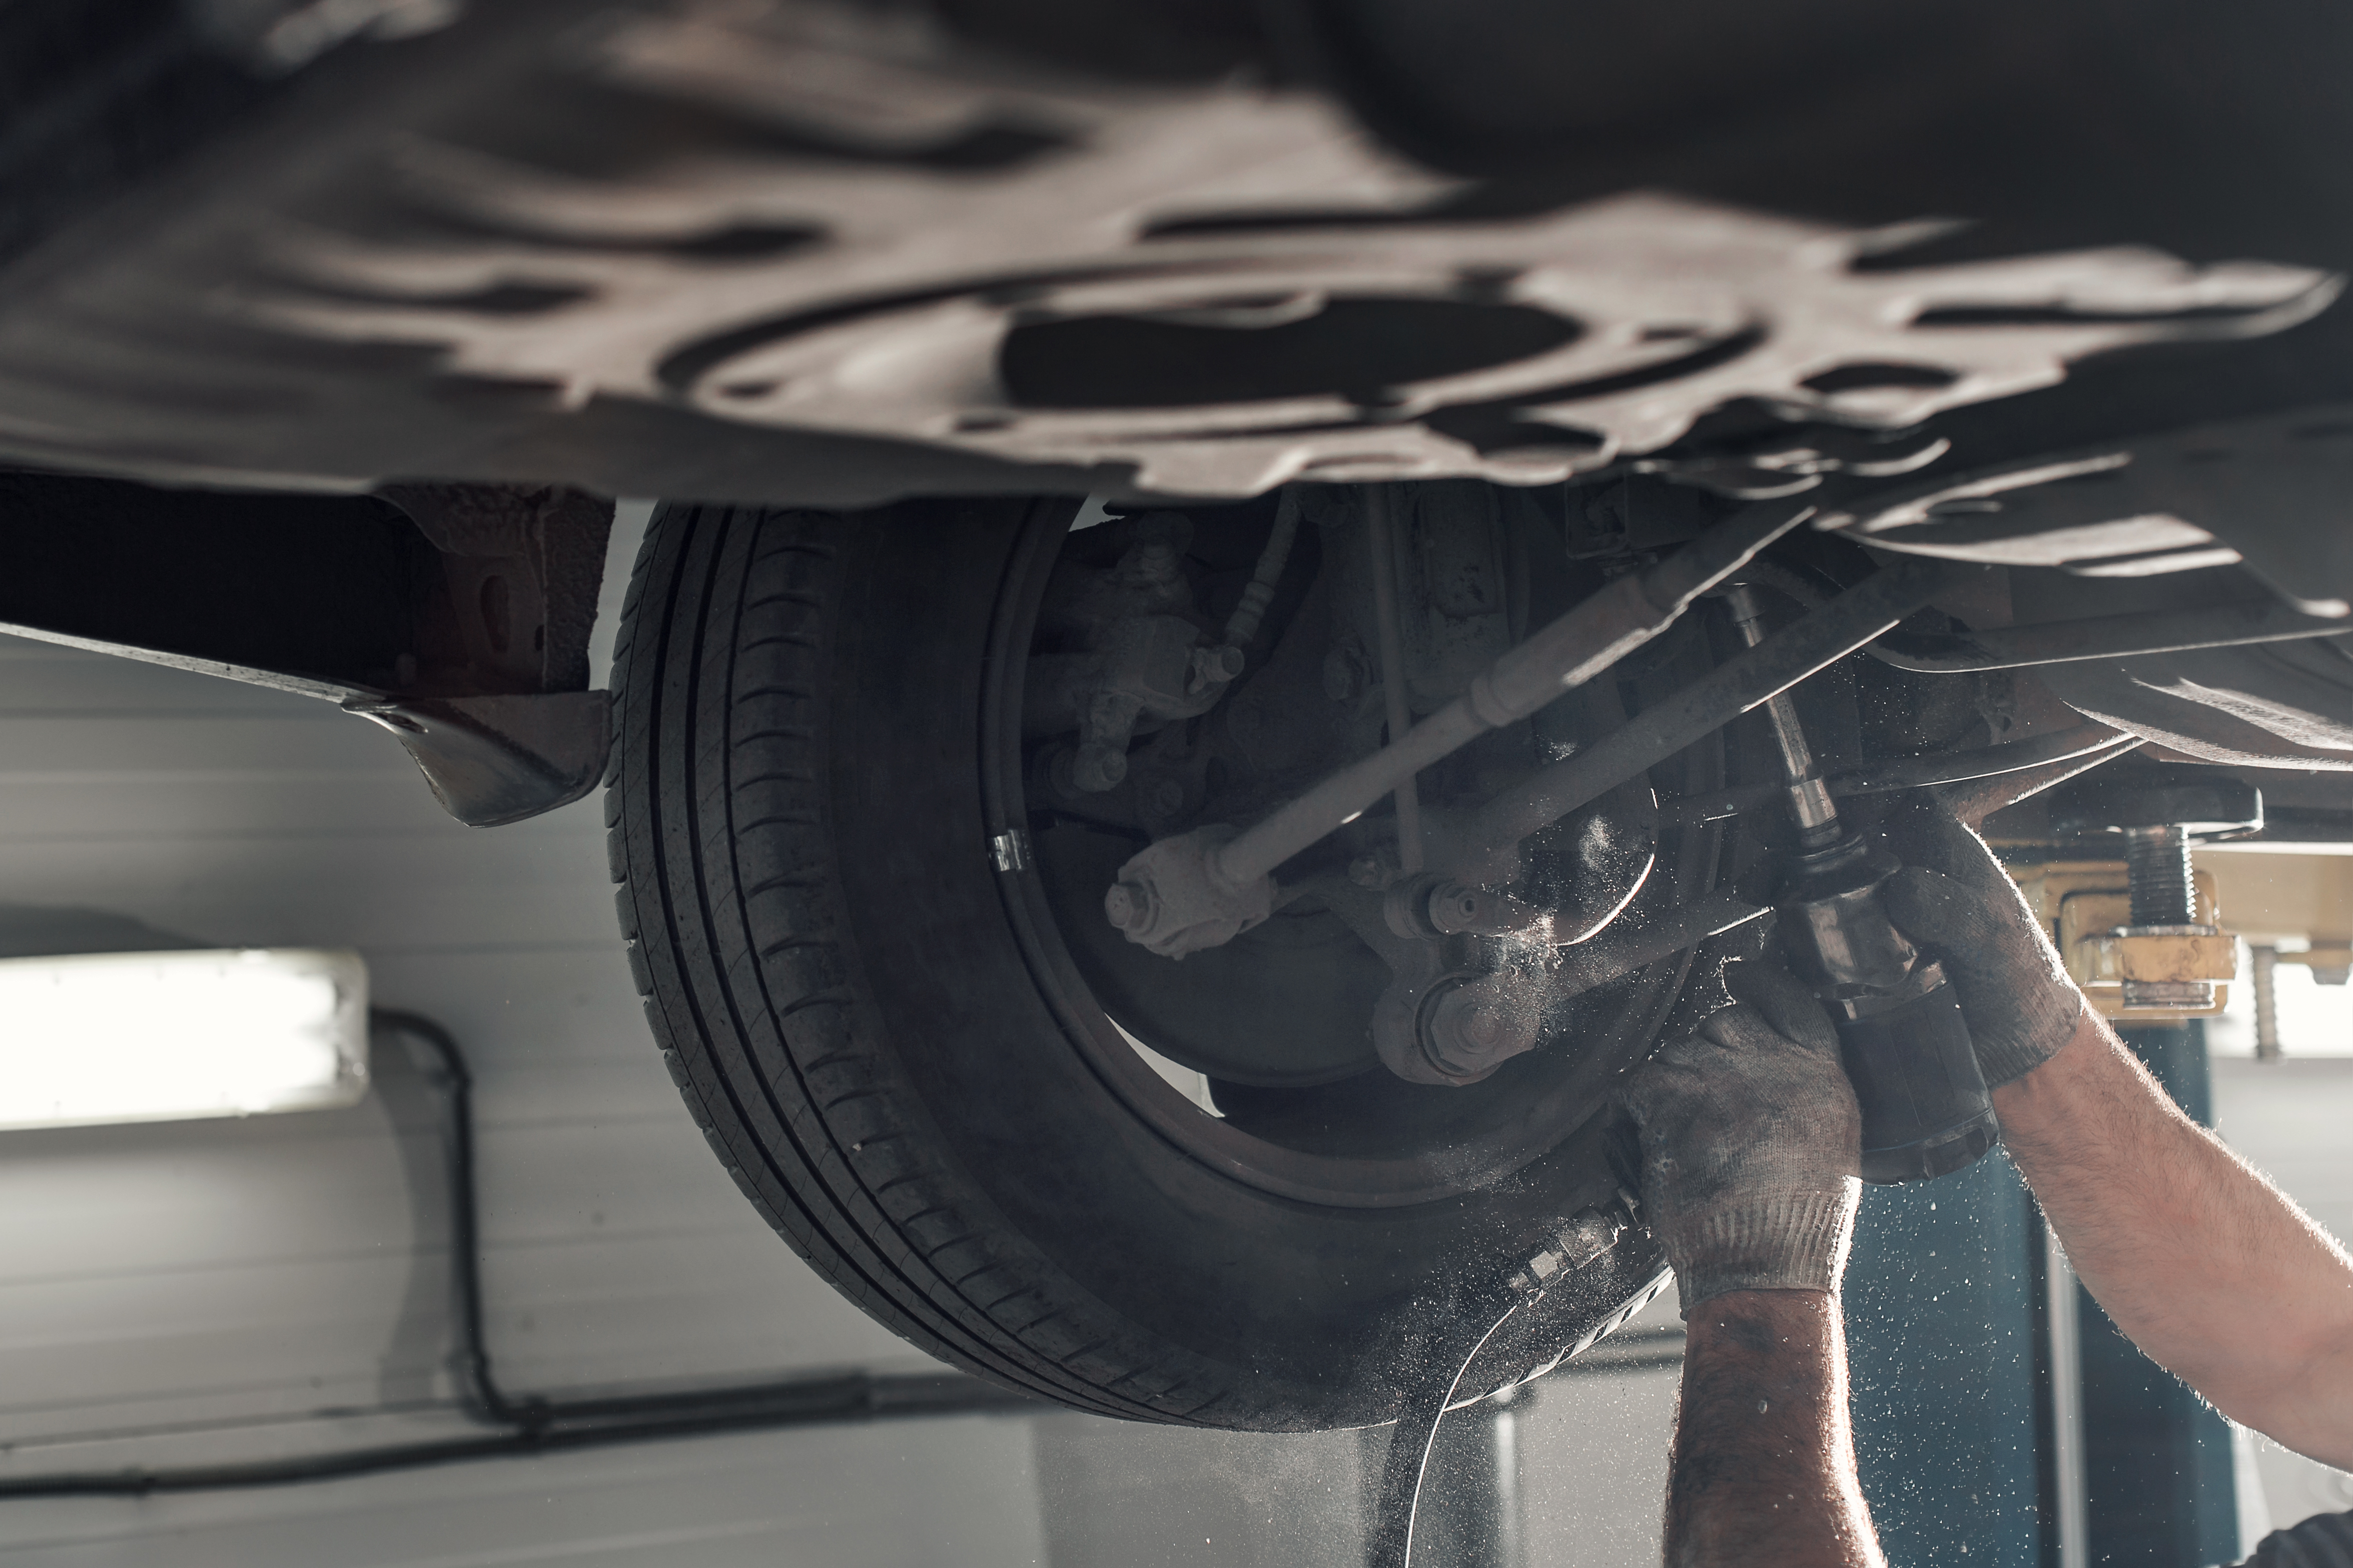 Auto Shop Perks You Shouldn't Live Without